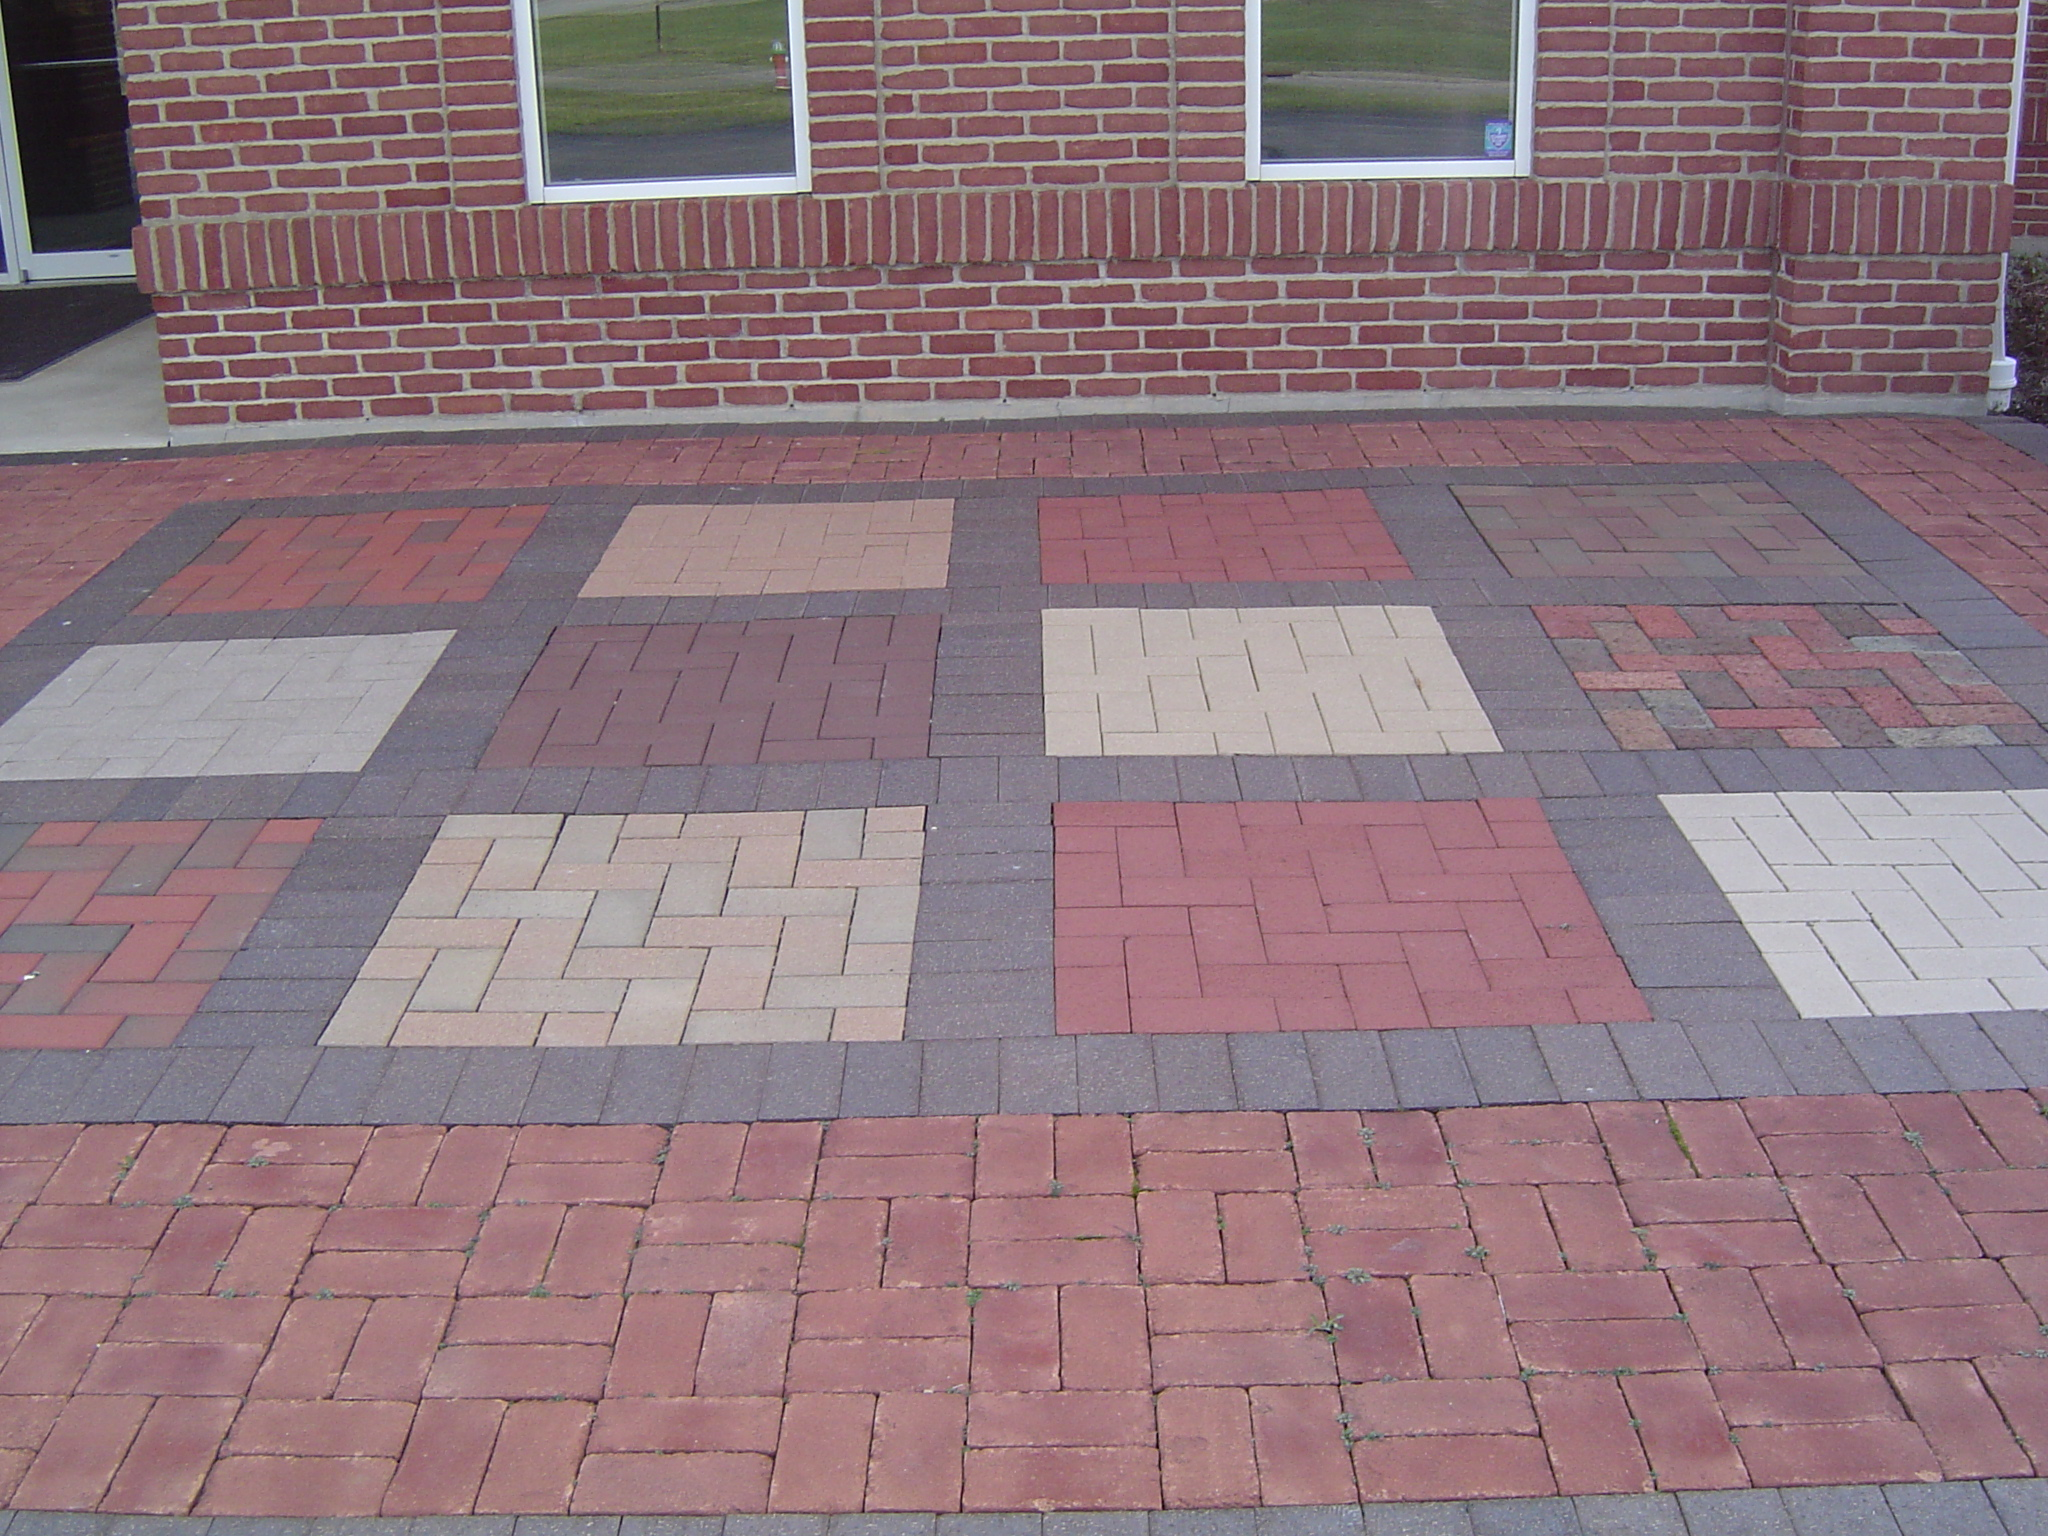 Brick Patio Design Icmt Set Brick Patio Designs To Build A